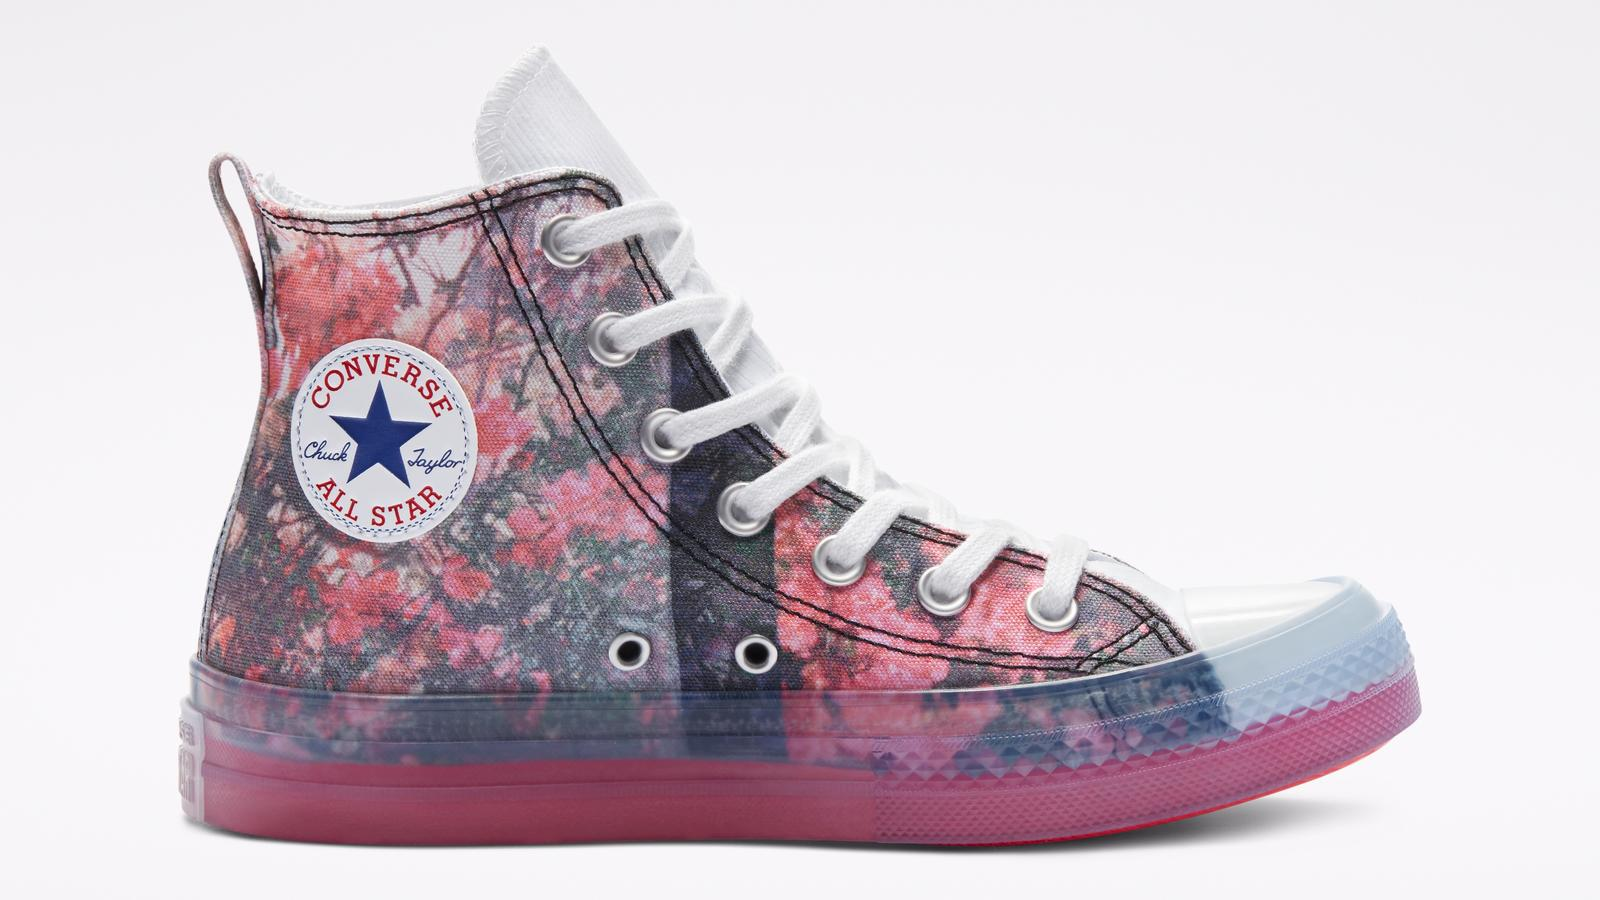 Converse x Shaniqwa Jarvis Chuck Taylor All Star CX and Apparel 5